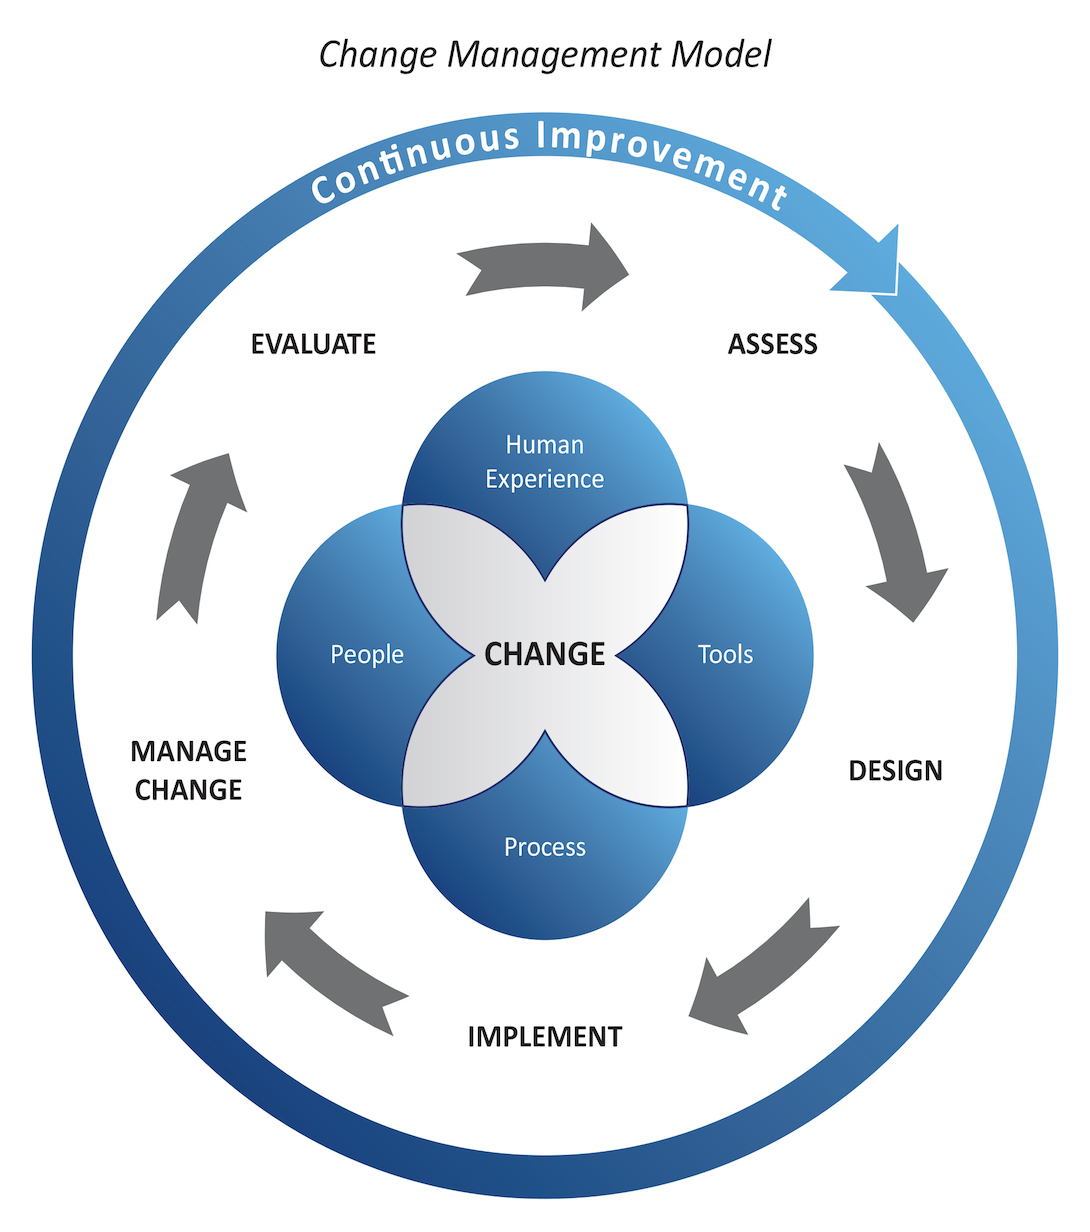 a change management Organizations must become increasingly able to change quickly and easily the business must be flexible yet capable of implementing and sustaining organizational change deciding what to change is one thing making changes stick is another to improve odds, use this change management checklist.